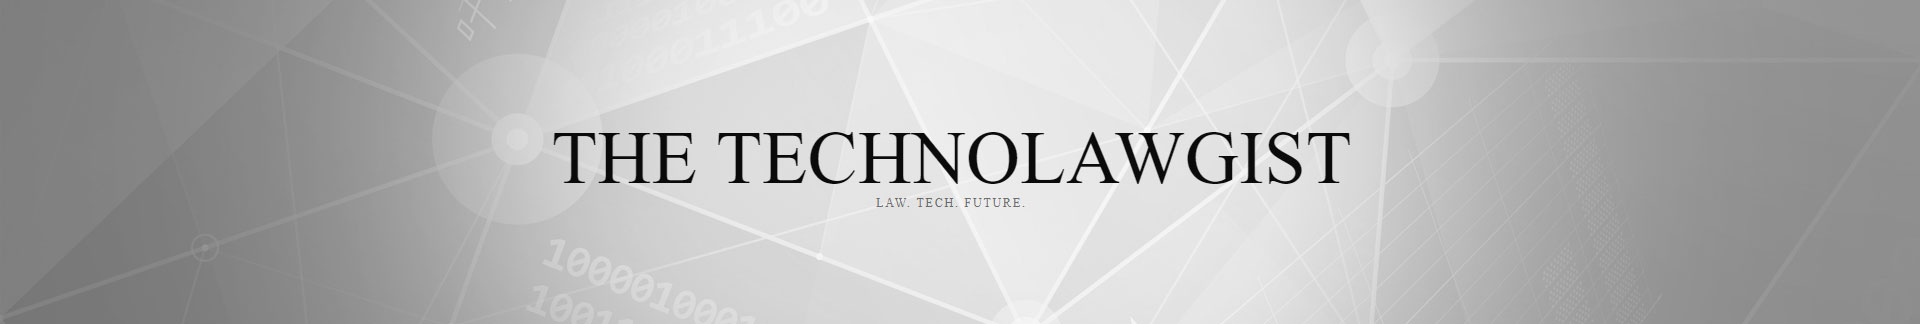 Technolawgist news banner